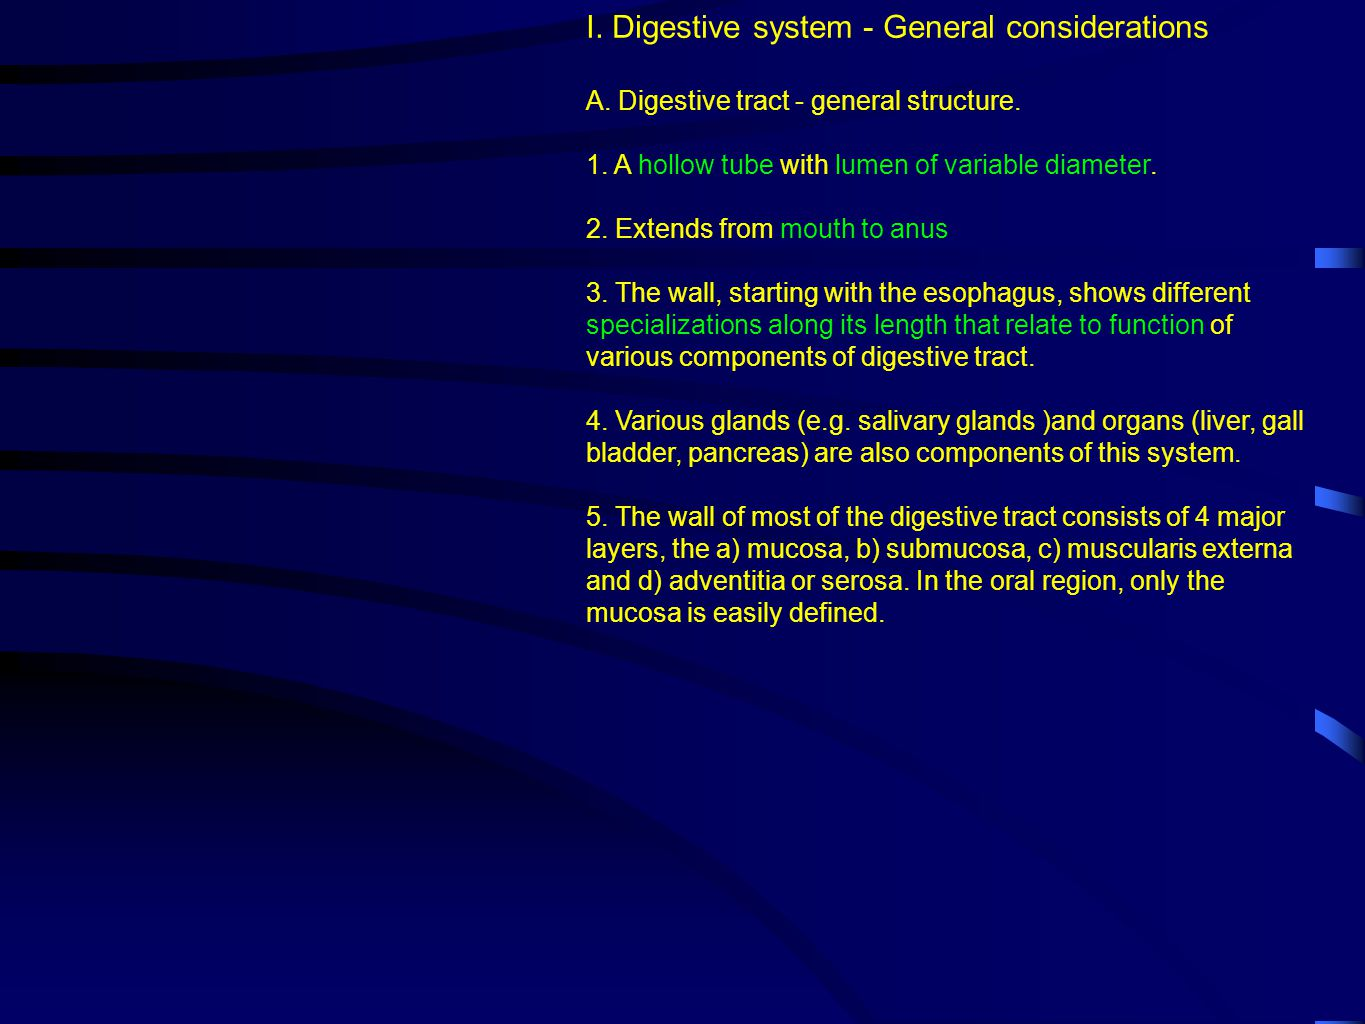 I. Digestive system - General considerations